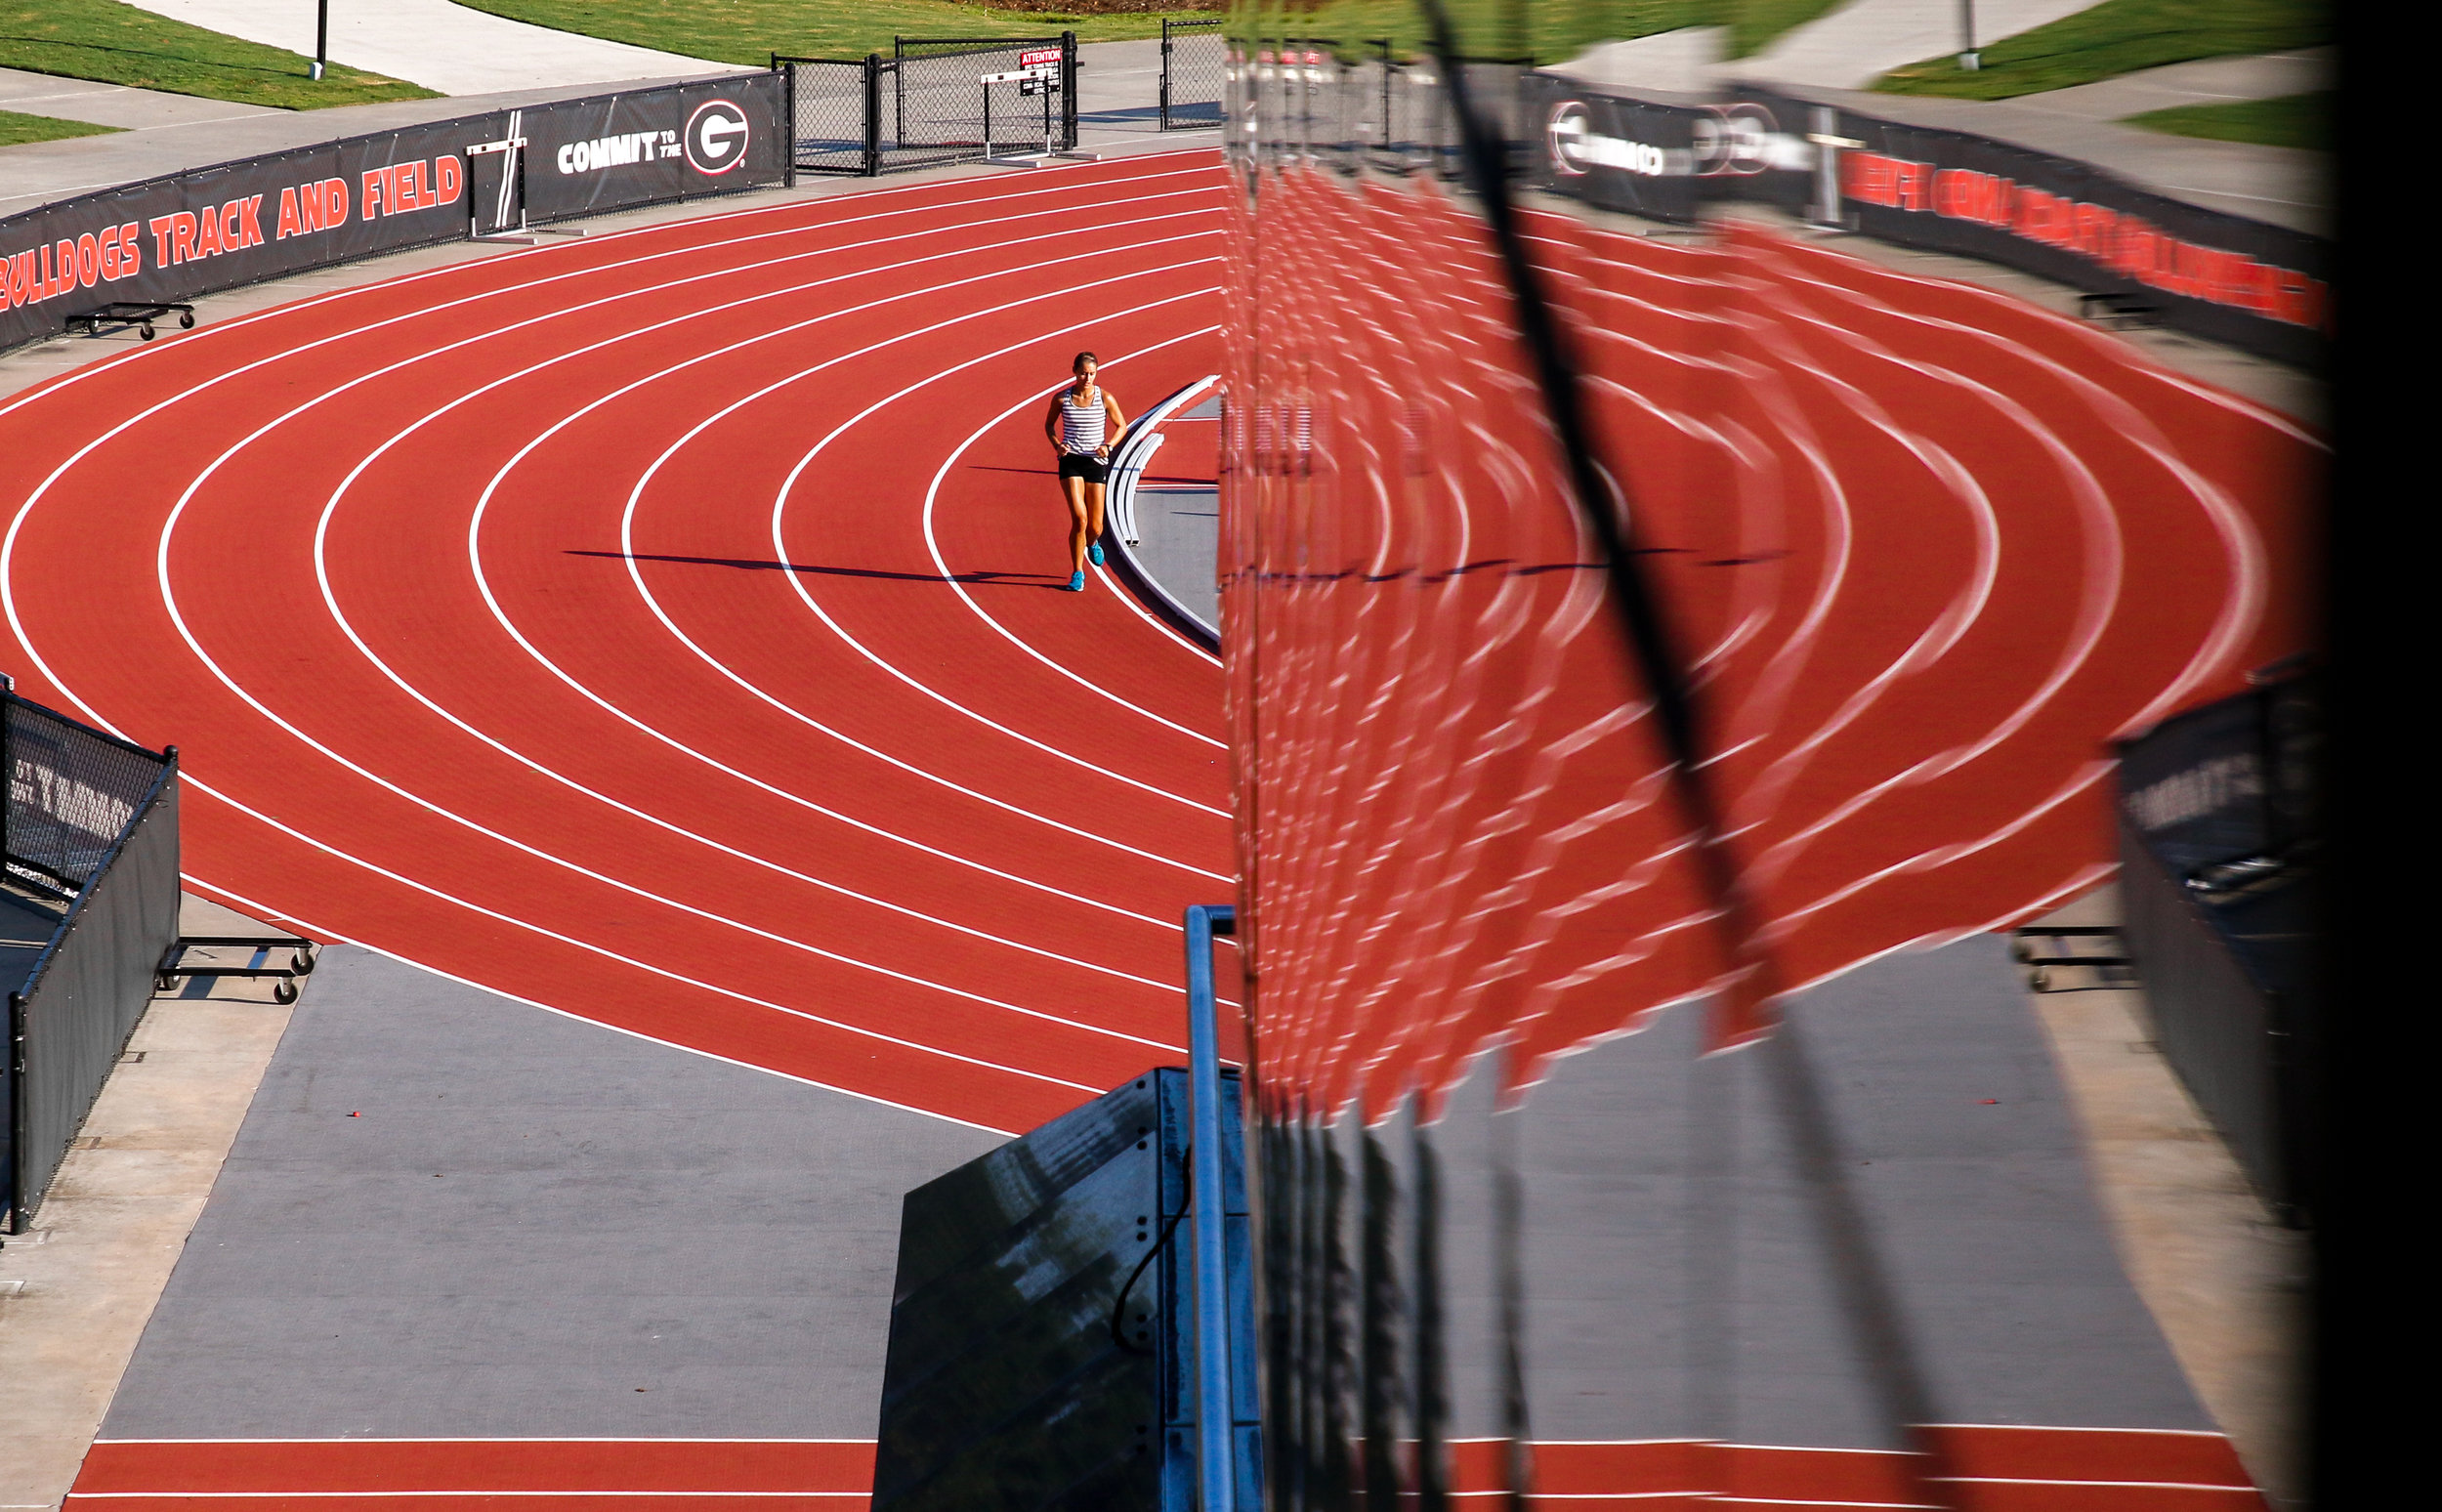 A runner jogs the inside curve of the Specs Towns Track in Athens, Ga., on Thursday, Aug. 9, 2018.